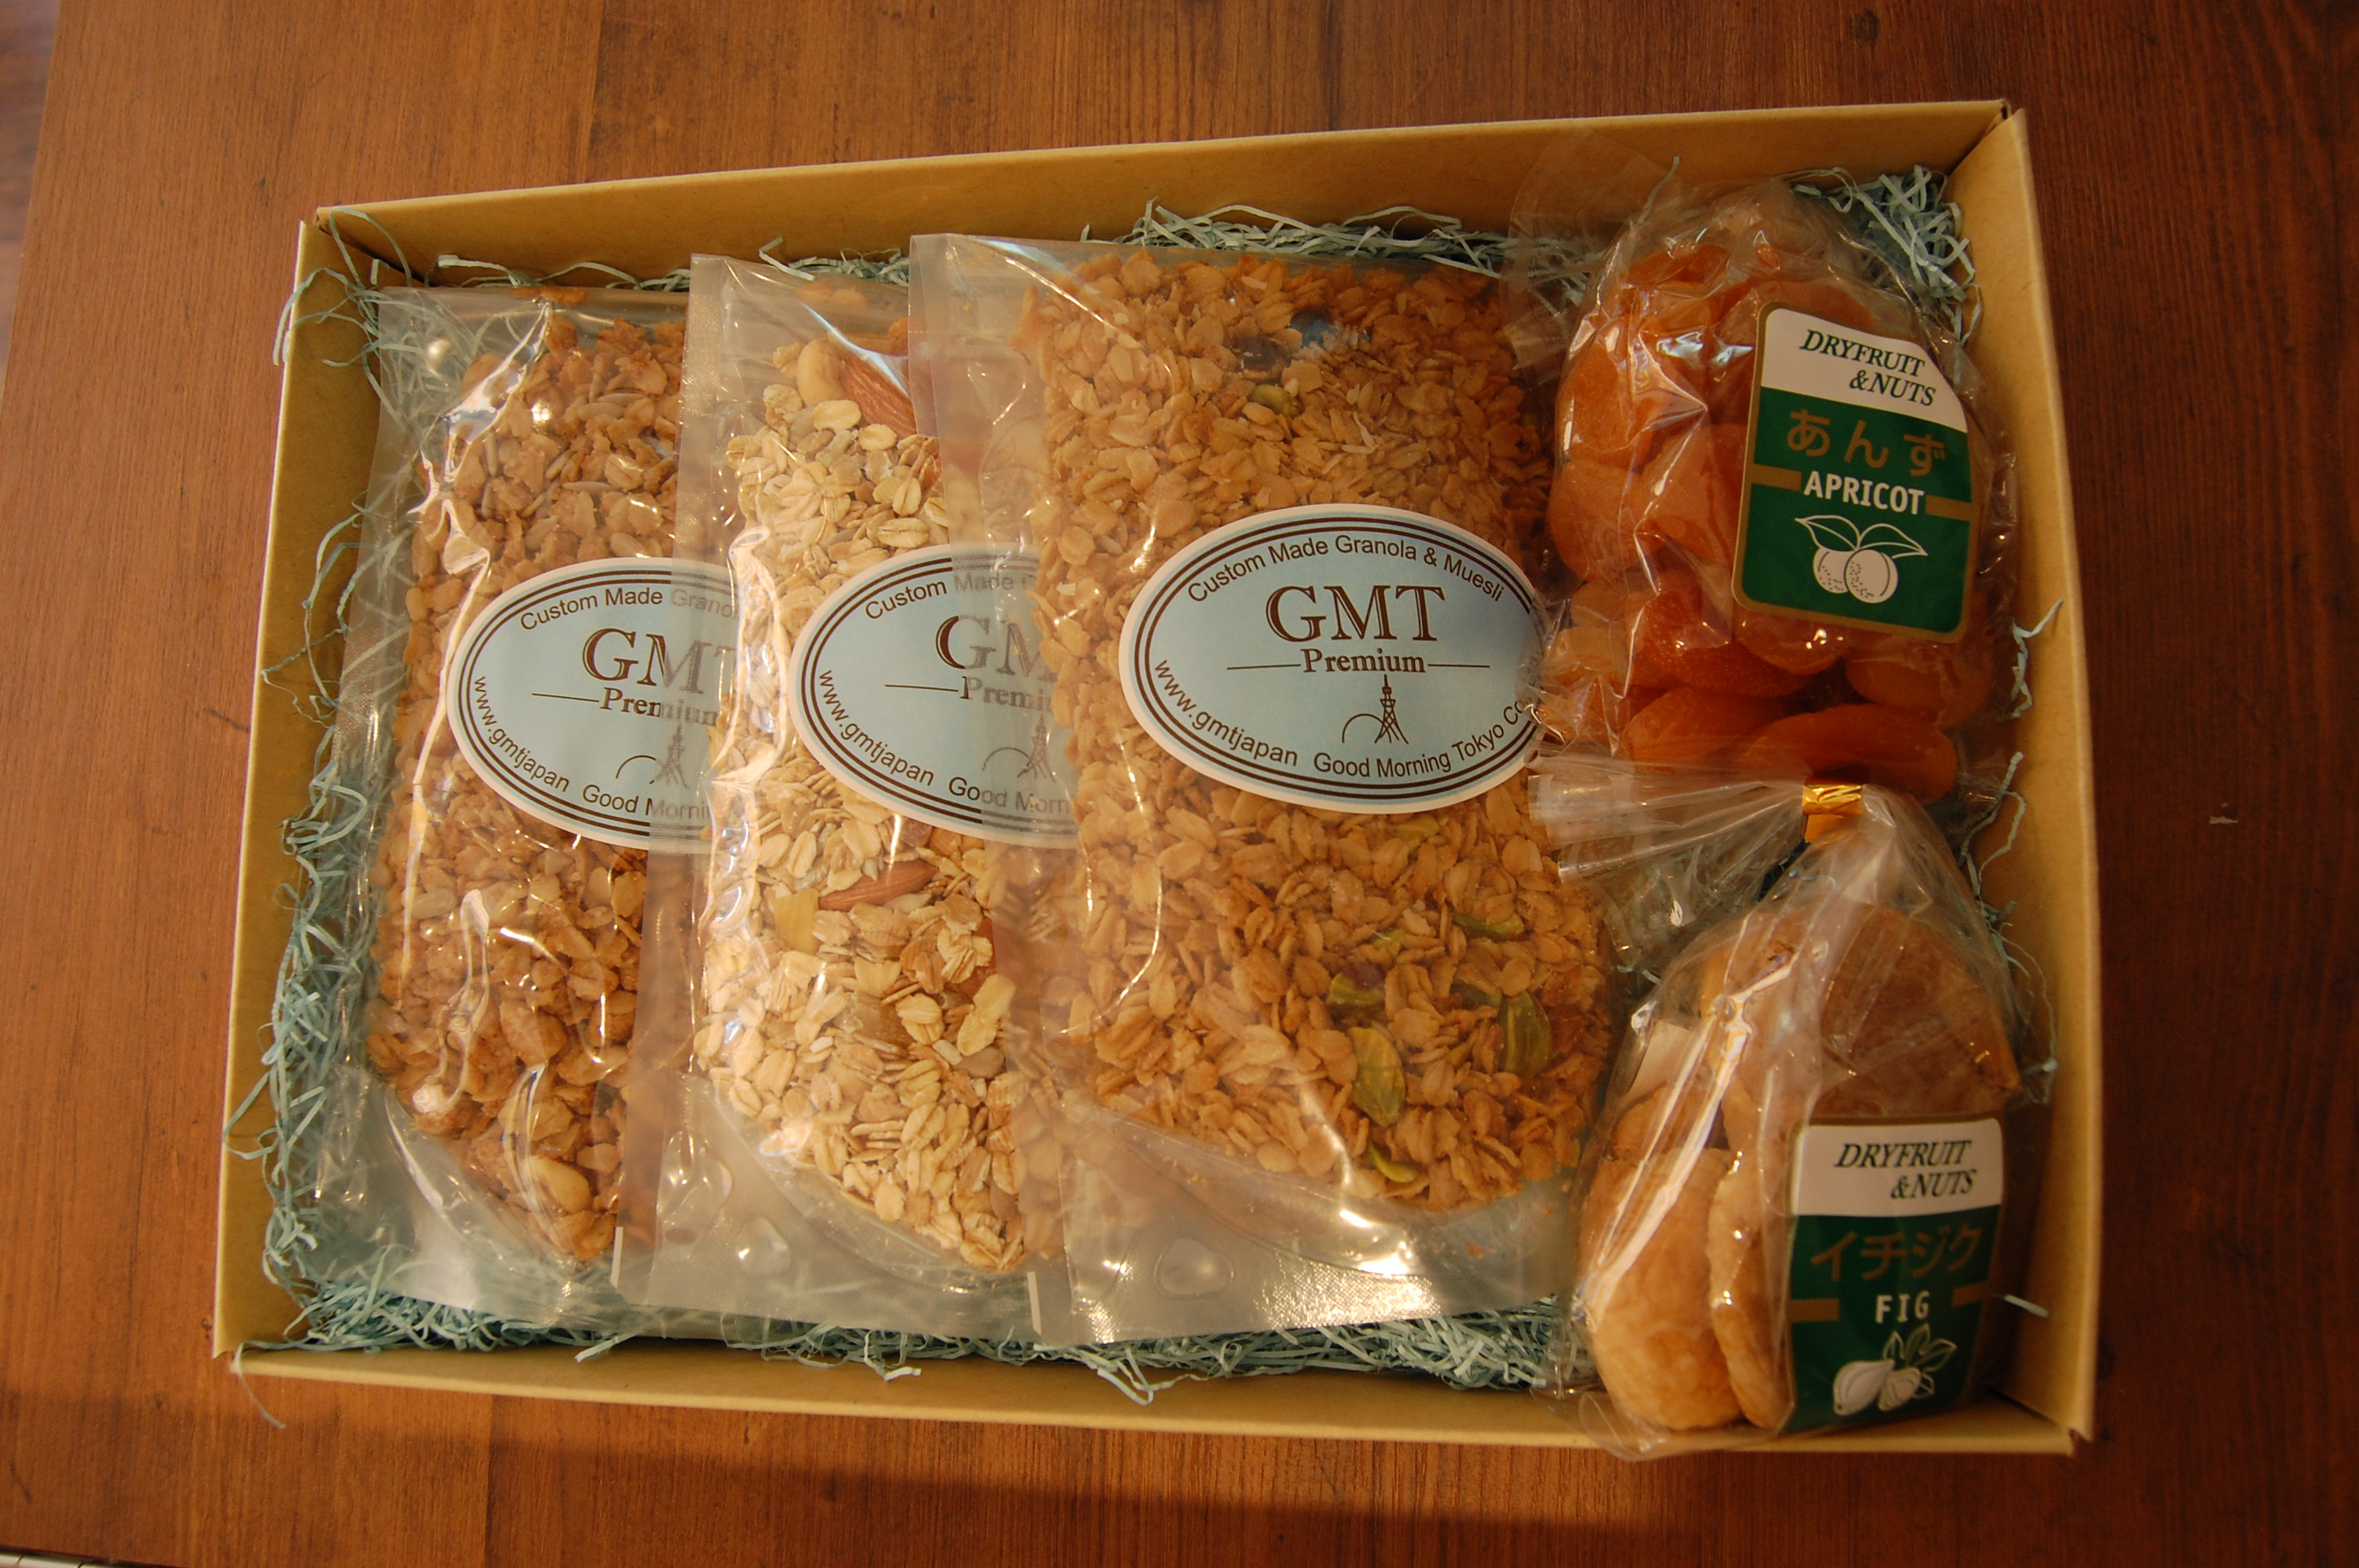 ギフトセット * Gift Set (3 Bags of Granola or Muesli and Dried Fruit)